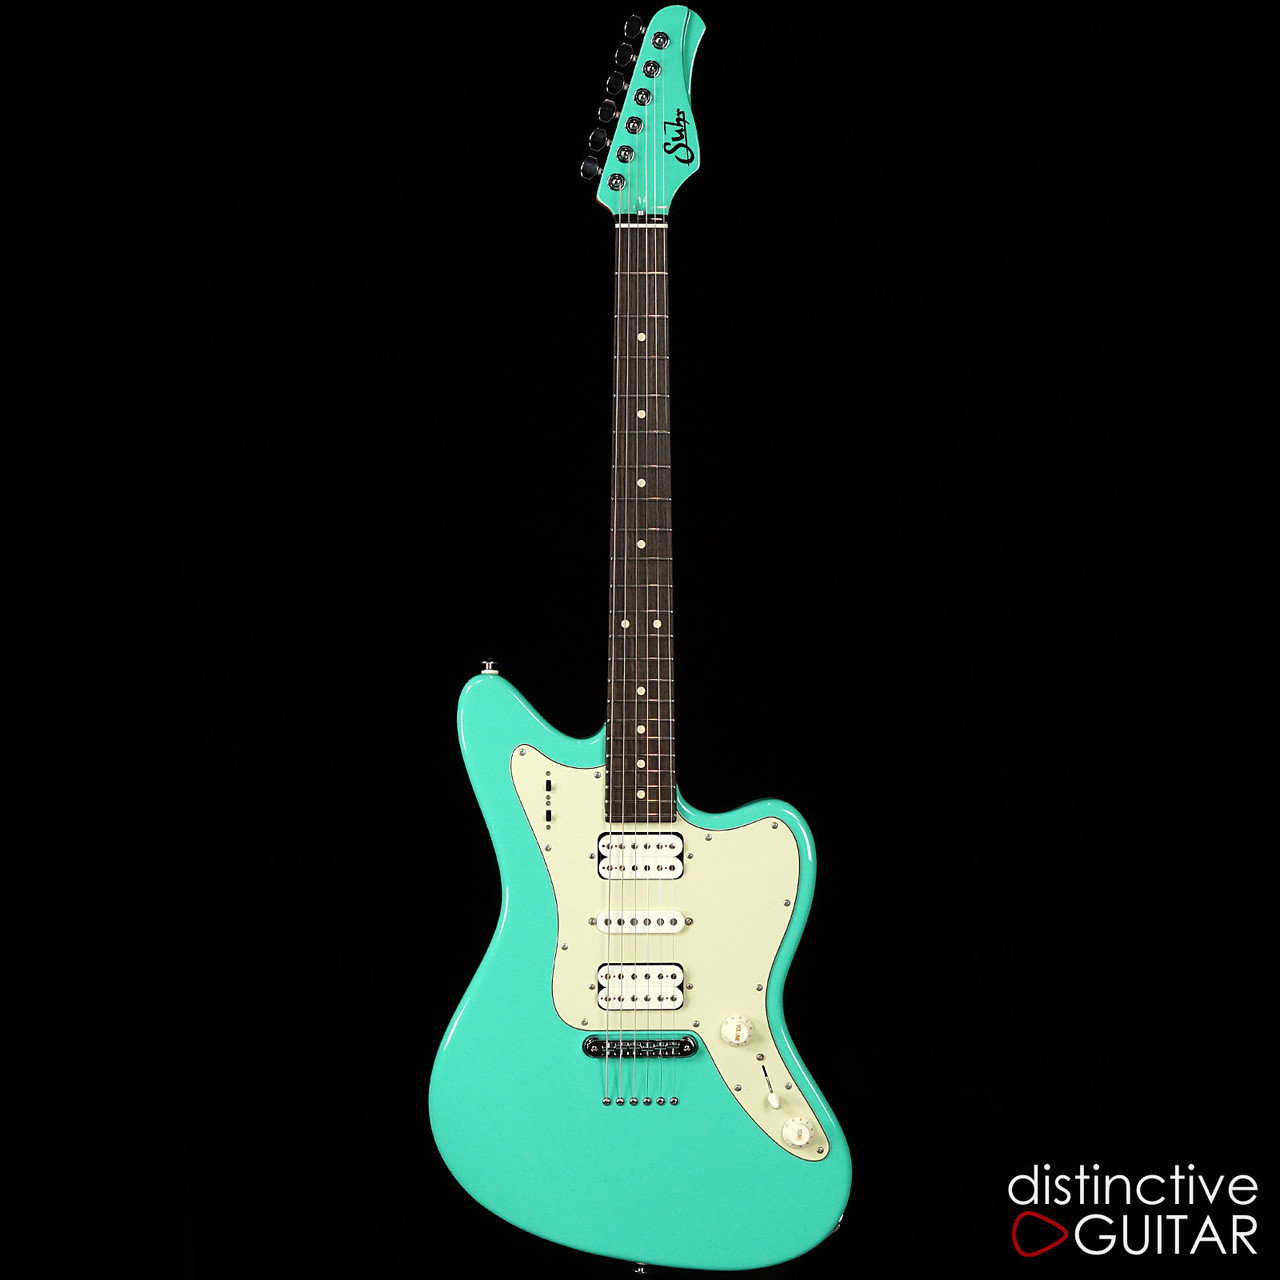 Suhr Ssv Wiring Diagram Electrical Diagrams Guitars Classic Jm Ian Thornley Signature Series Seafoam Green Js9a4c Fishman